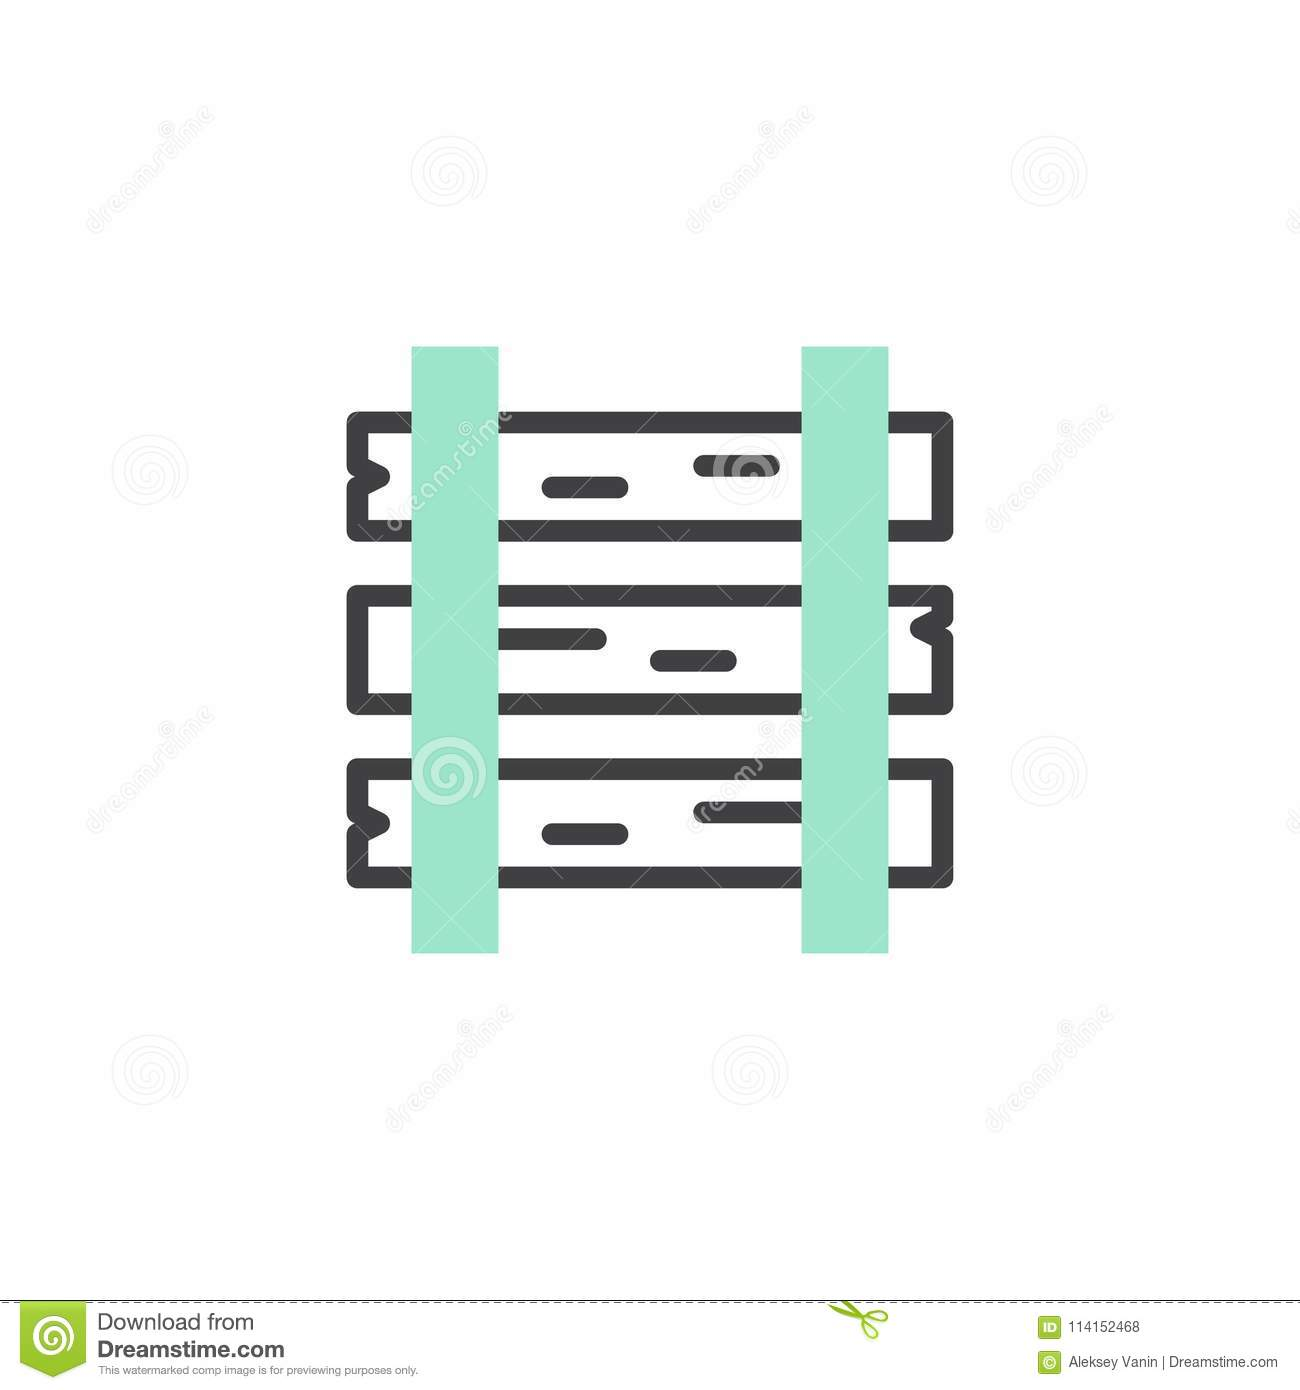 rails and sleepers icon vector stock vector illustration of